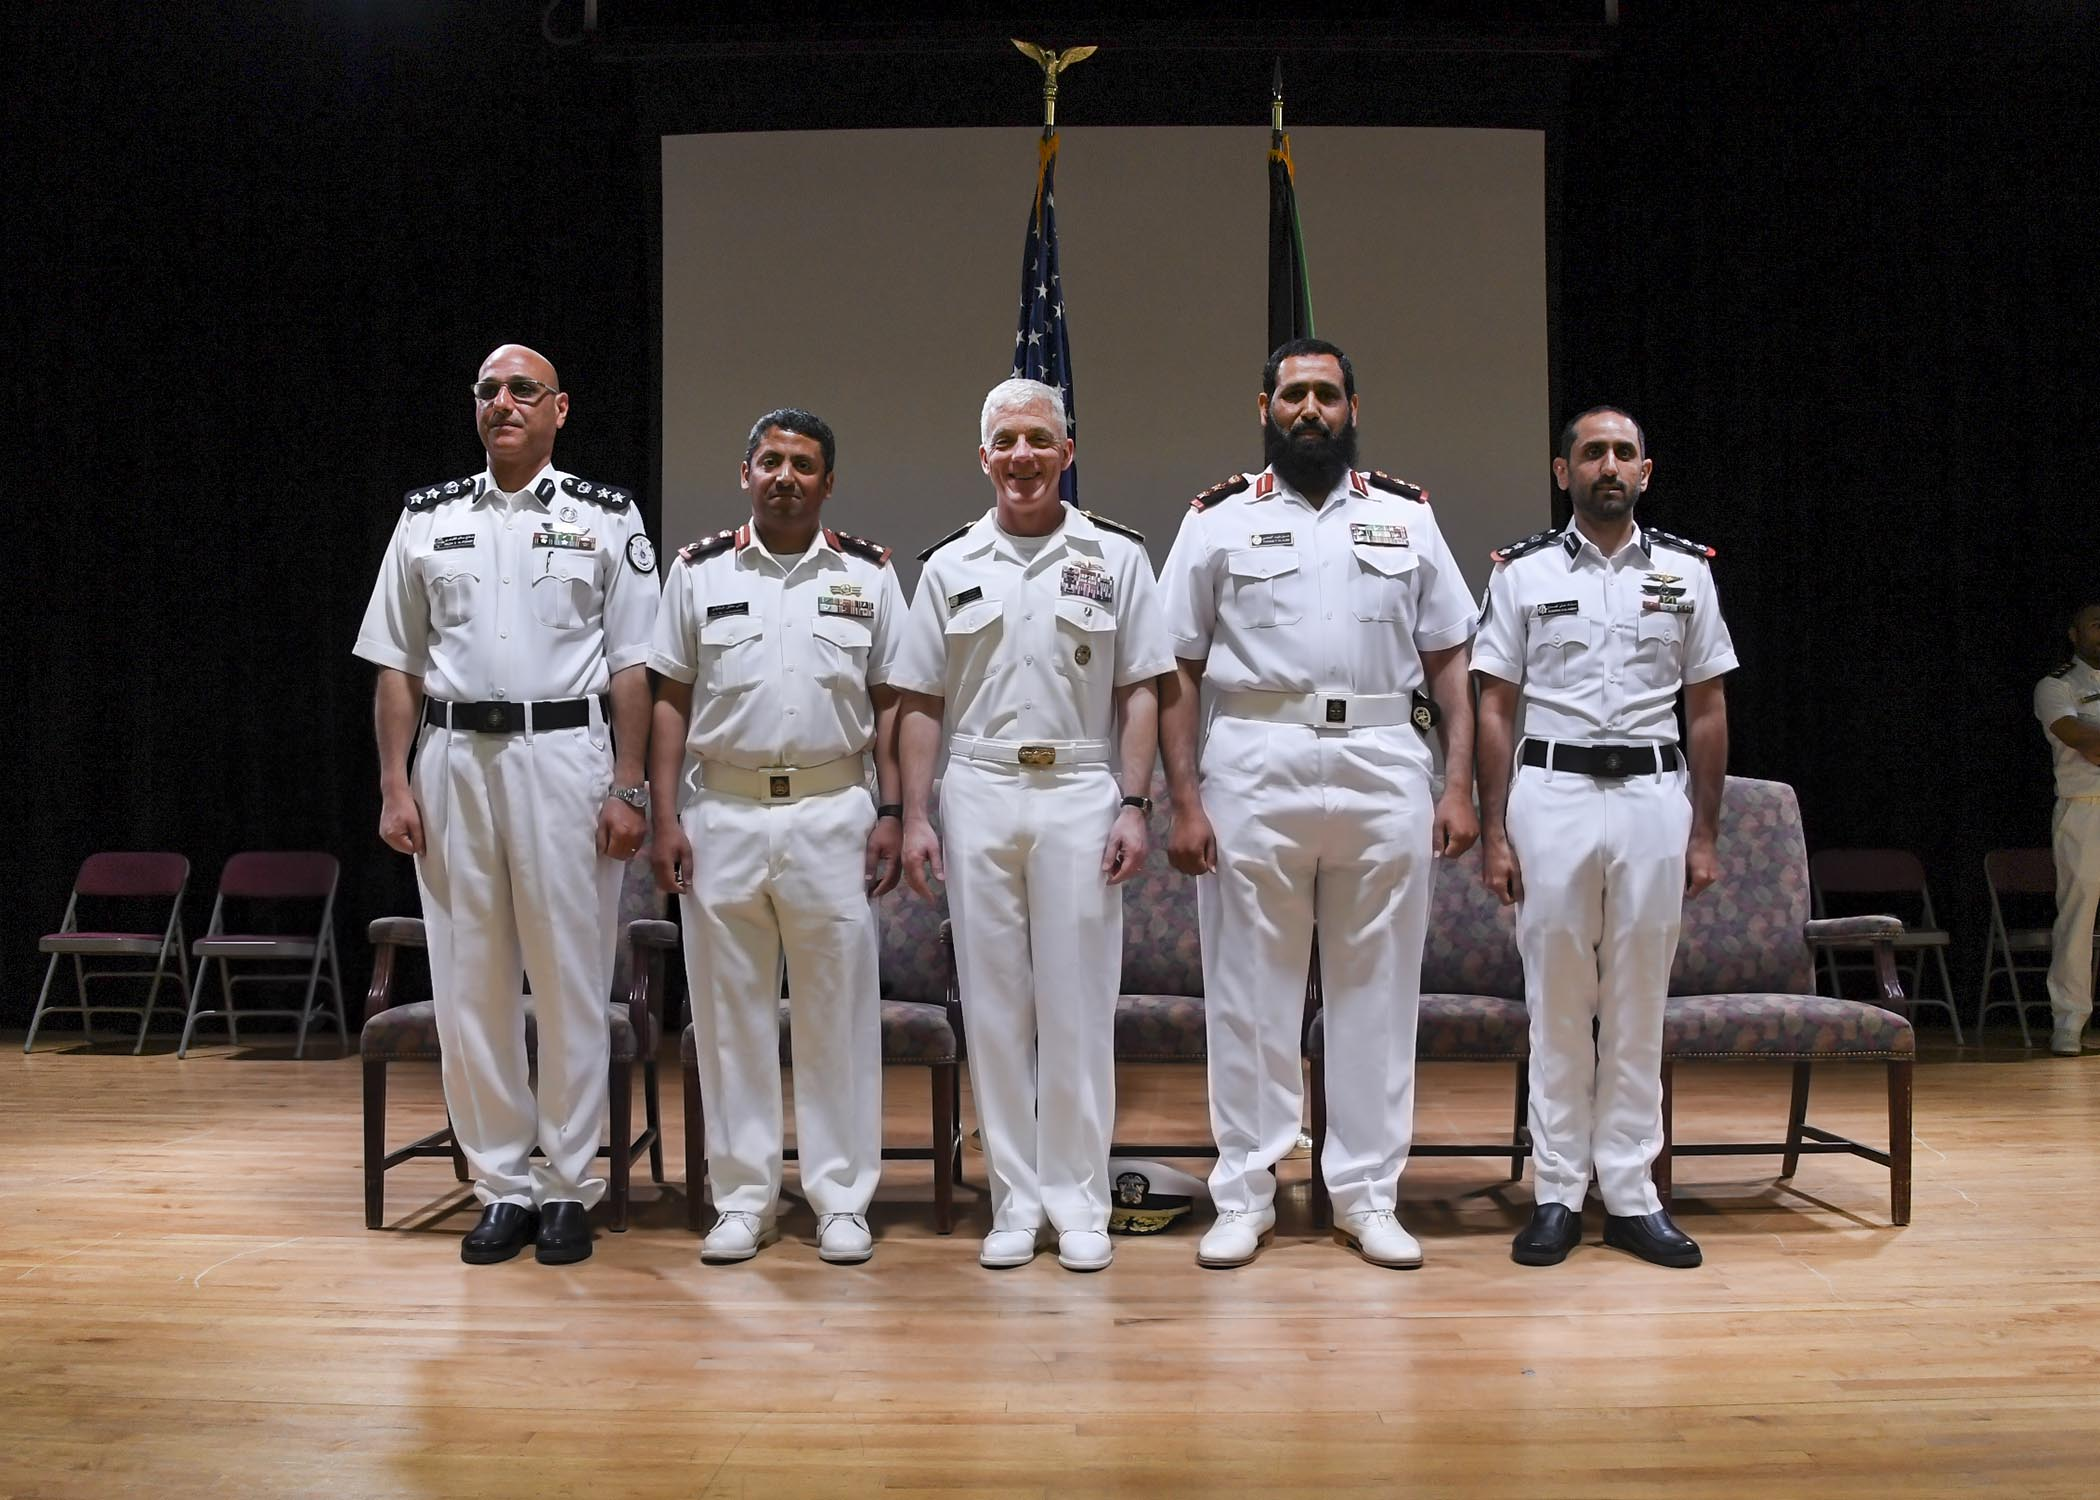 FIRST TIME CTF 151 AND CTF 152 CONDUCTED A CHANGE OF COMMAND